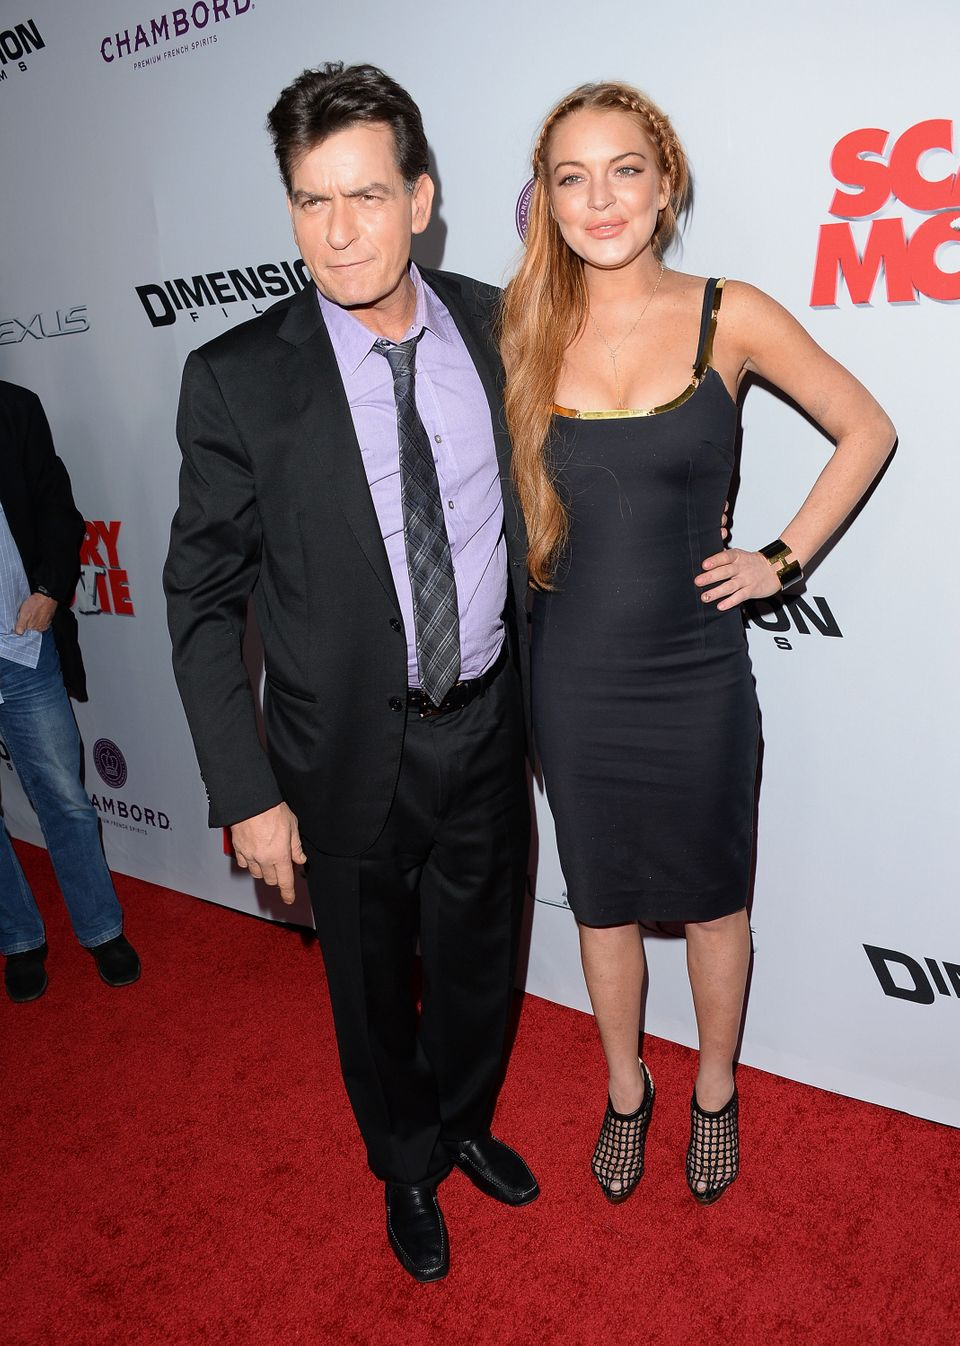 HOLLYWOOD, CA - APRIL 11:  Actors Charlie Sheen (L) and Lindsay Lohan arrive at the Dimension Films' 'Scary Movie 5' premiere